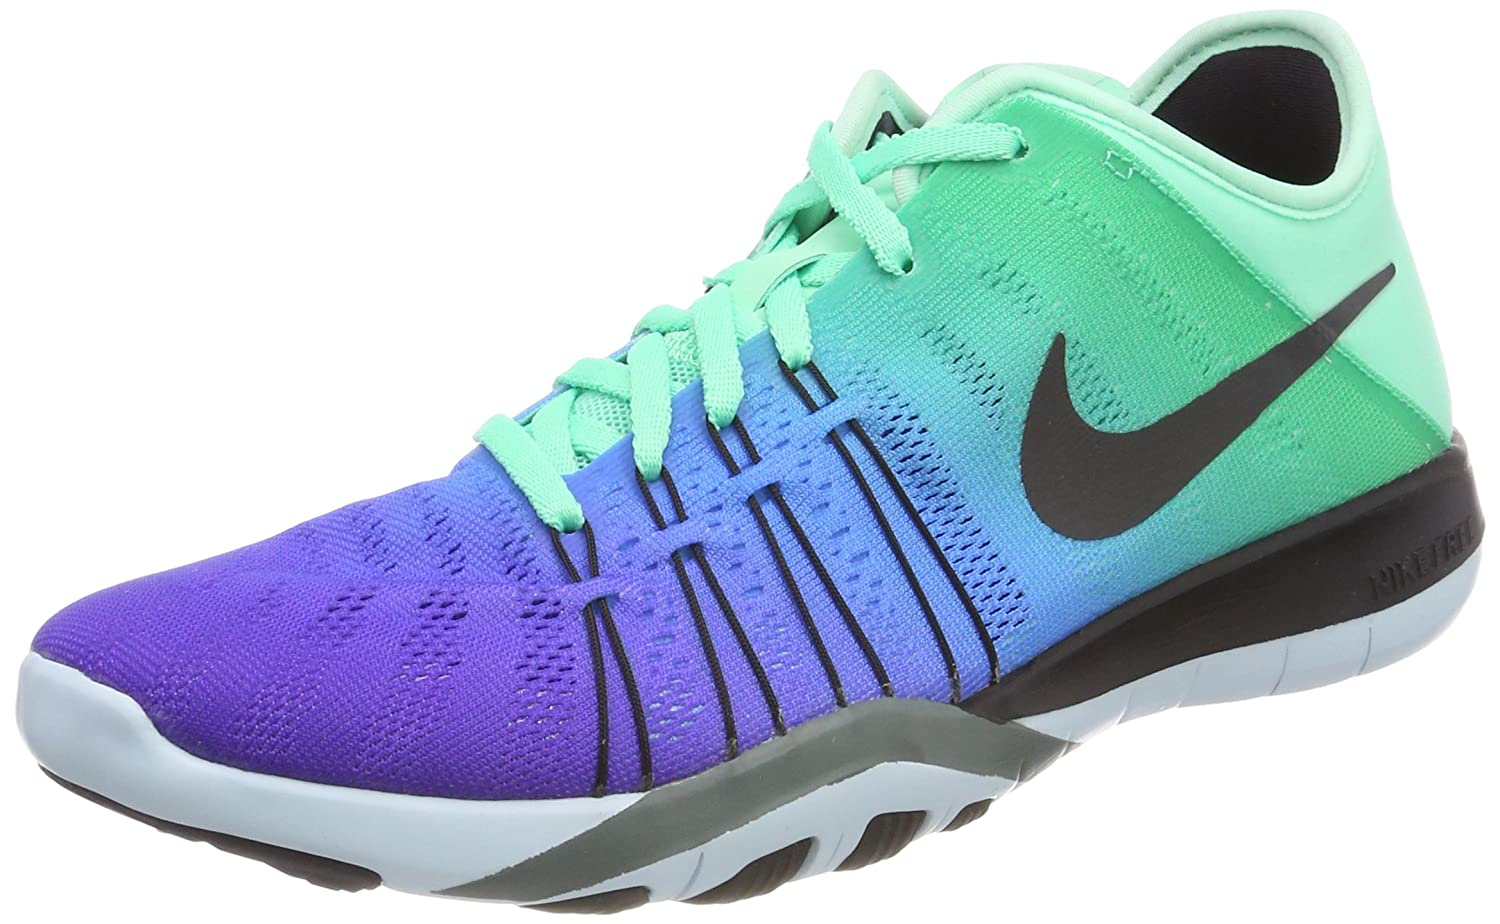 ac2a1bf07bf5 Nike Women s Free TR 6 Spectrum Training Shoe Green Glow Black Glacier  Blue Hasta Size 7 M US  Buy Online at Low Prices in India - Amazon.in